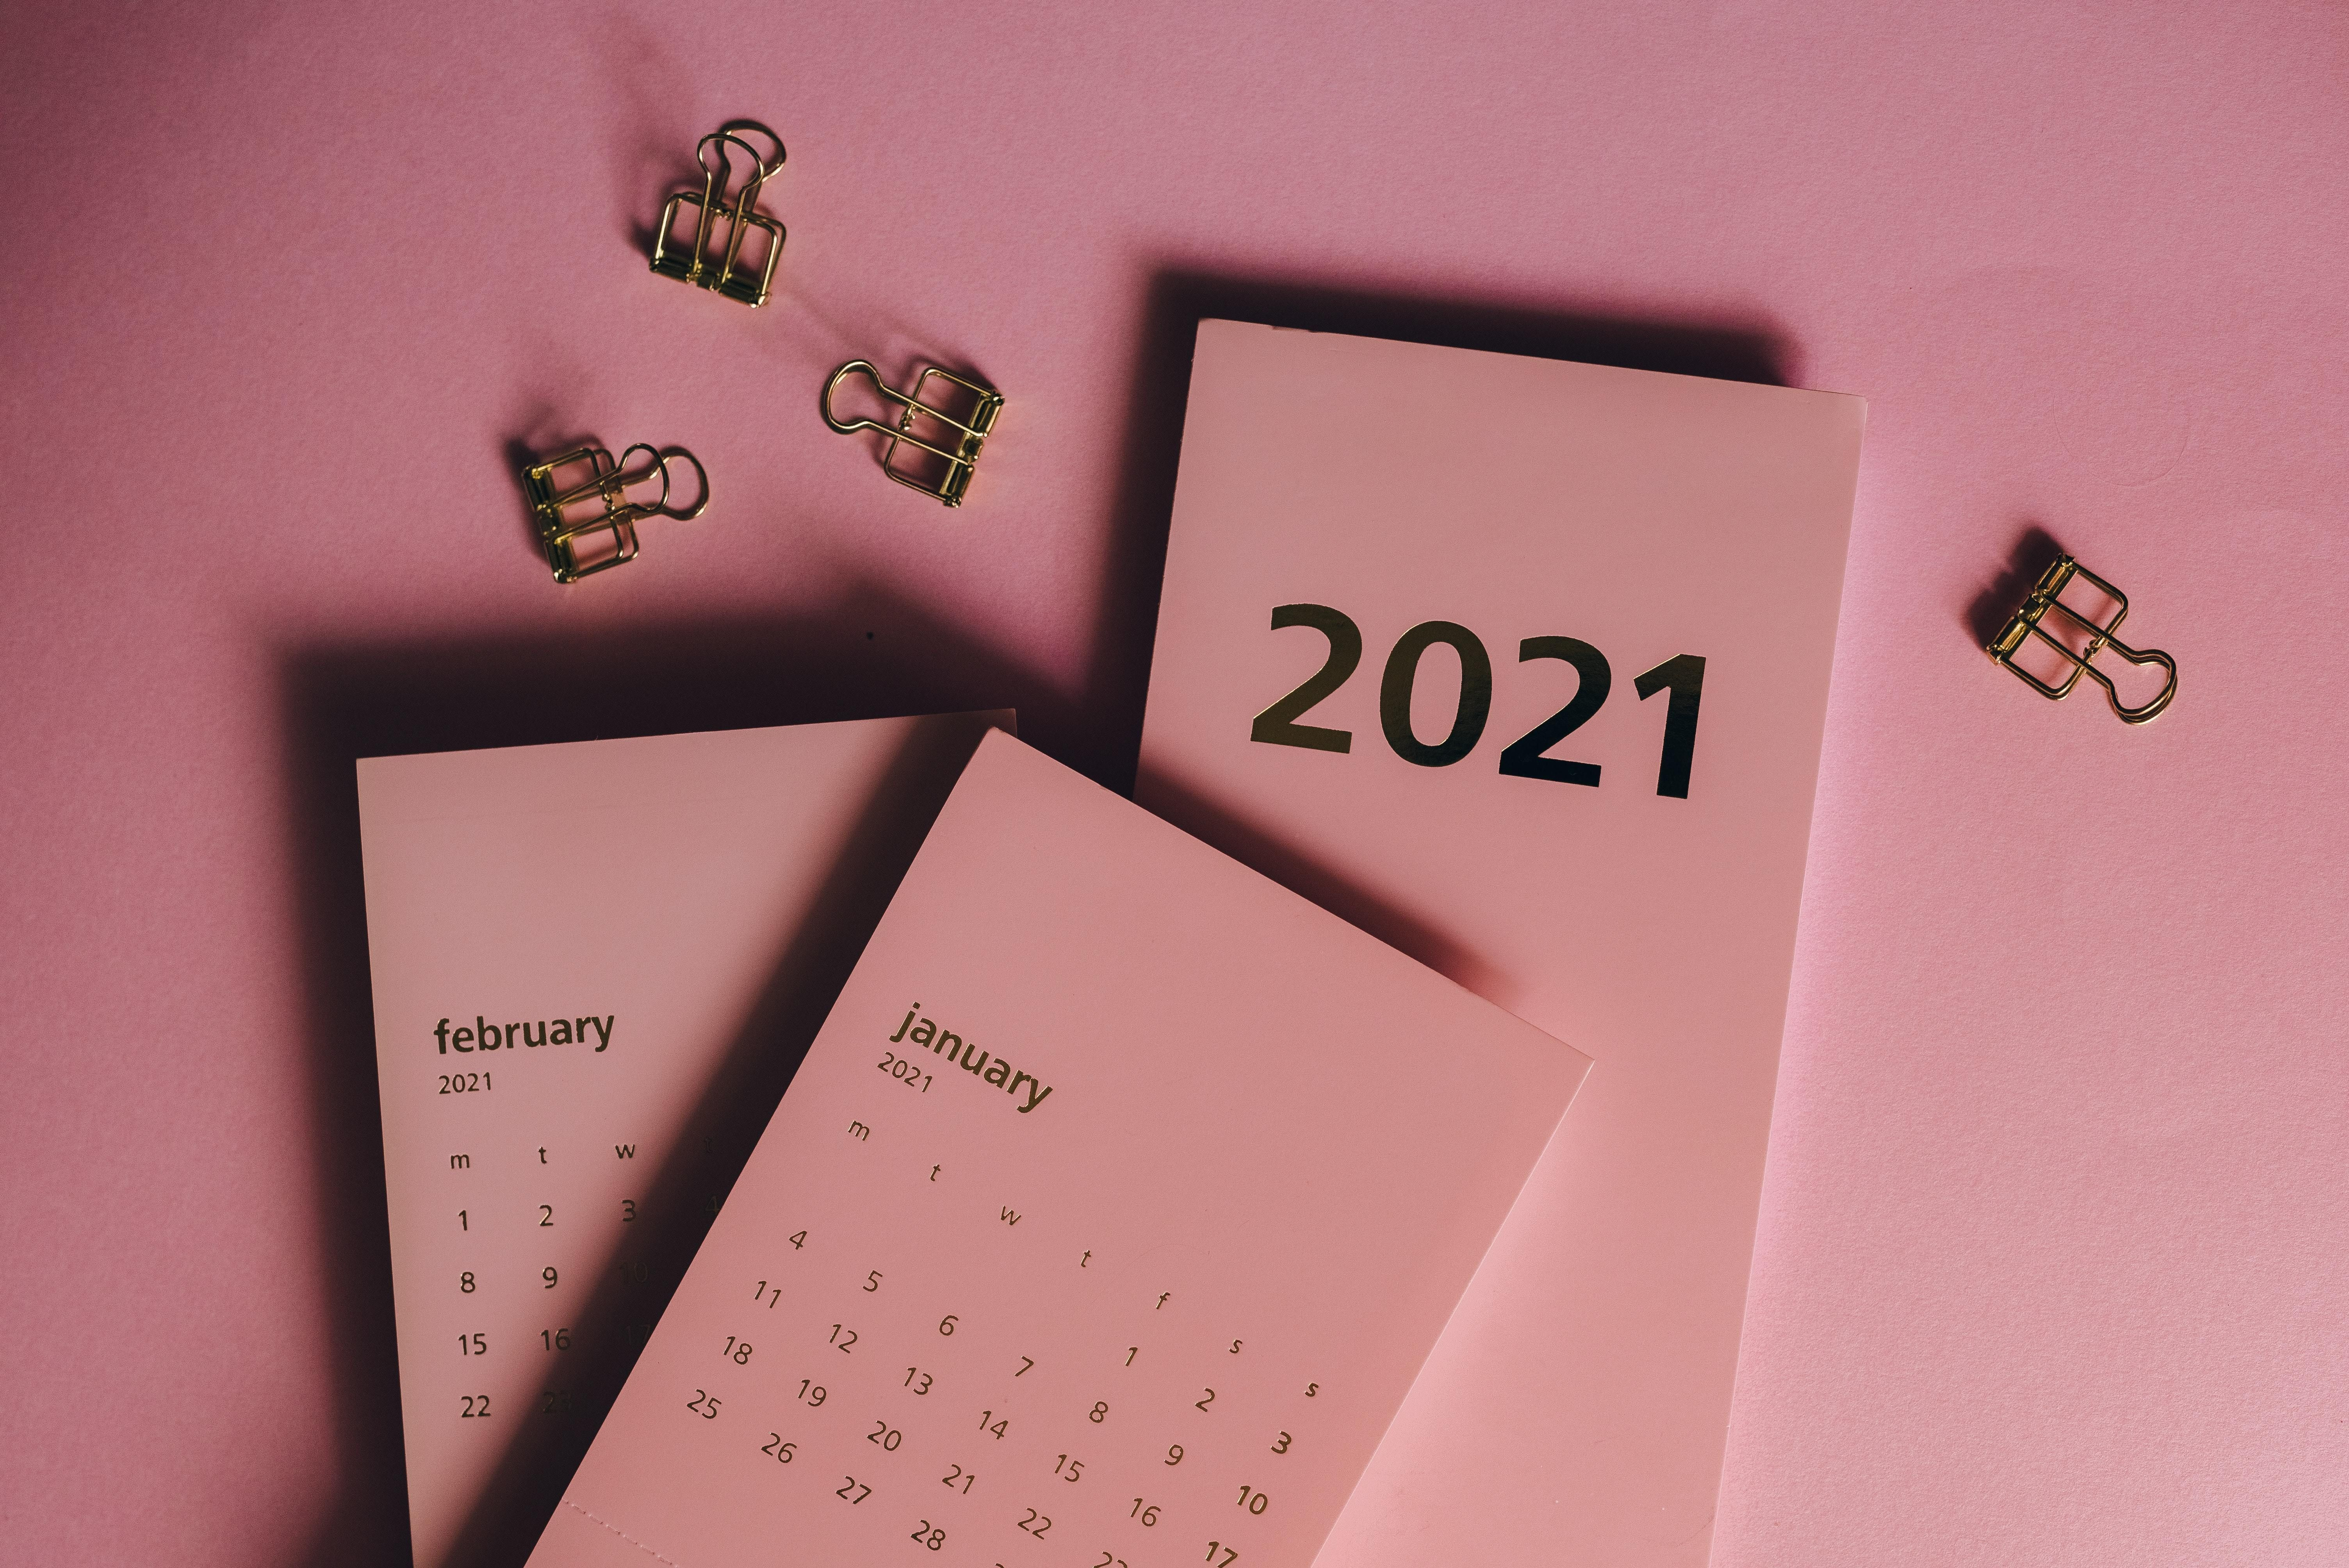 New Year's Resolutions: How's It Going?